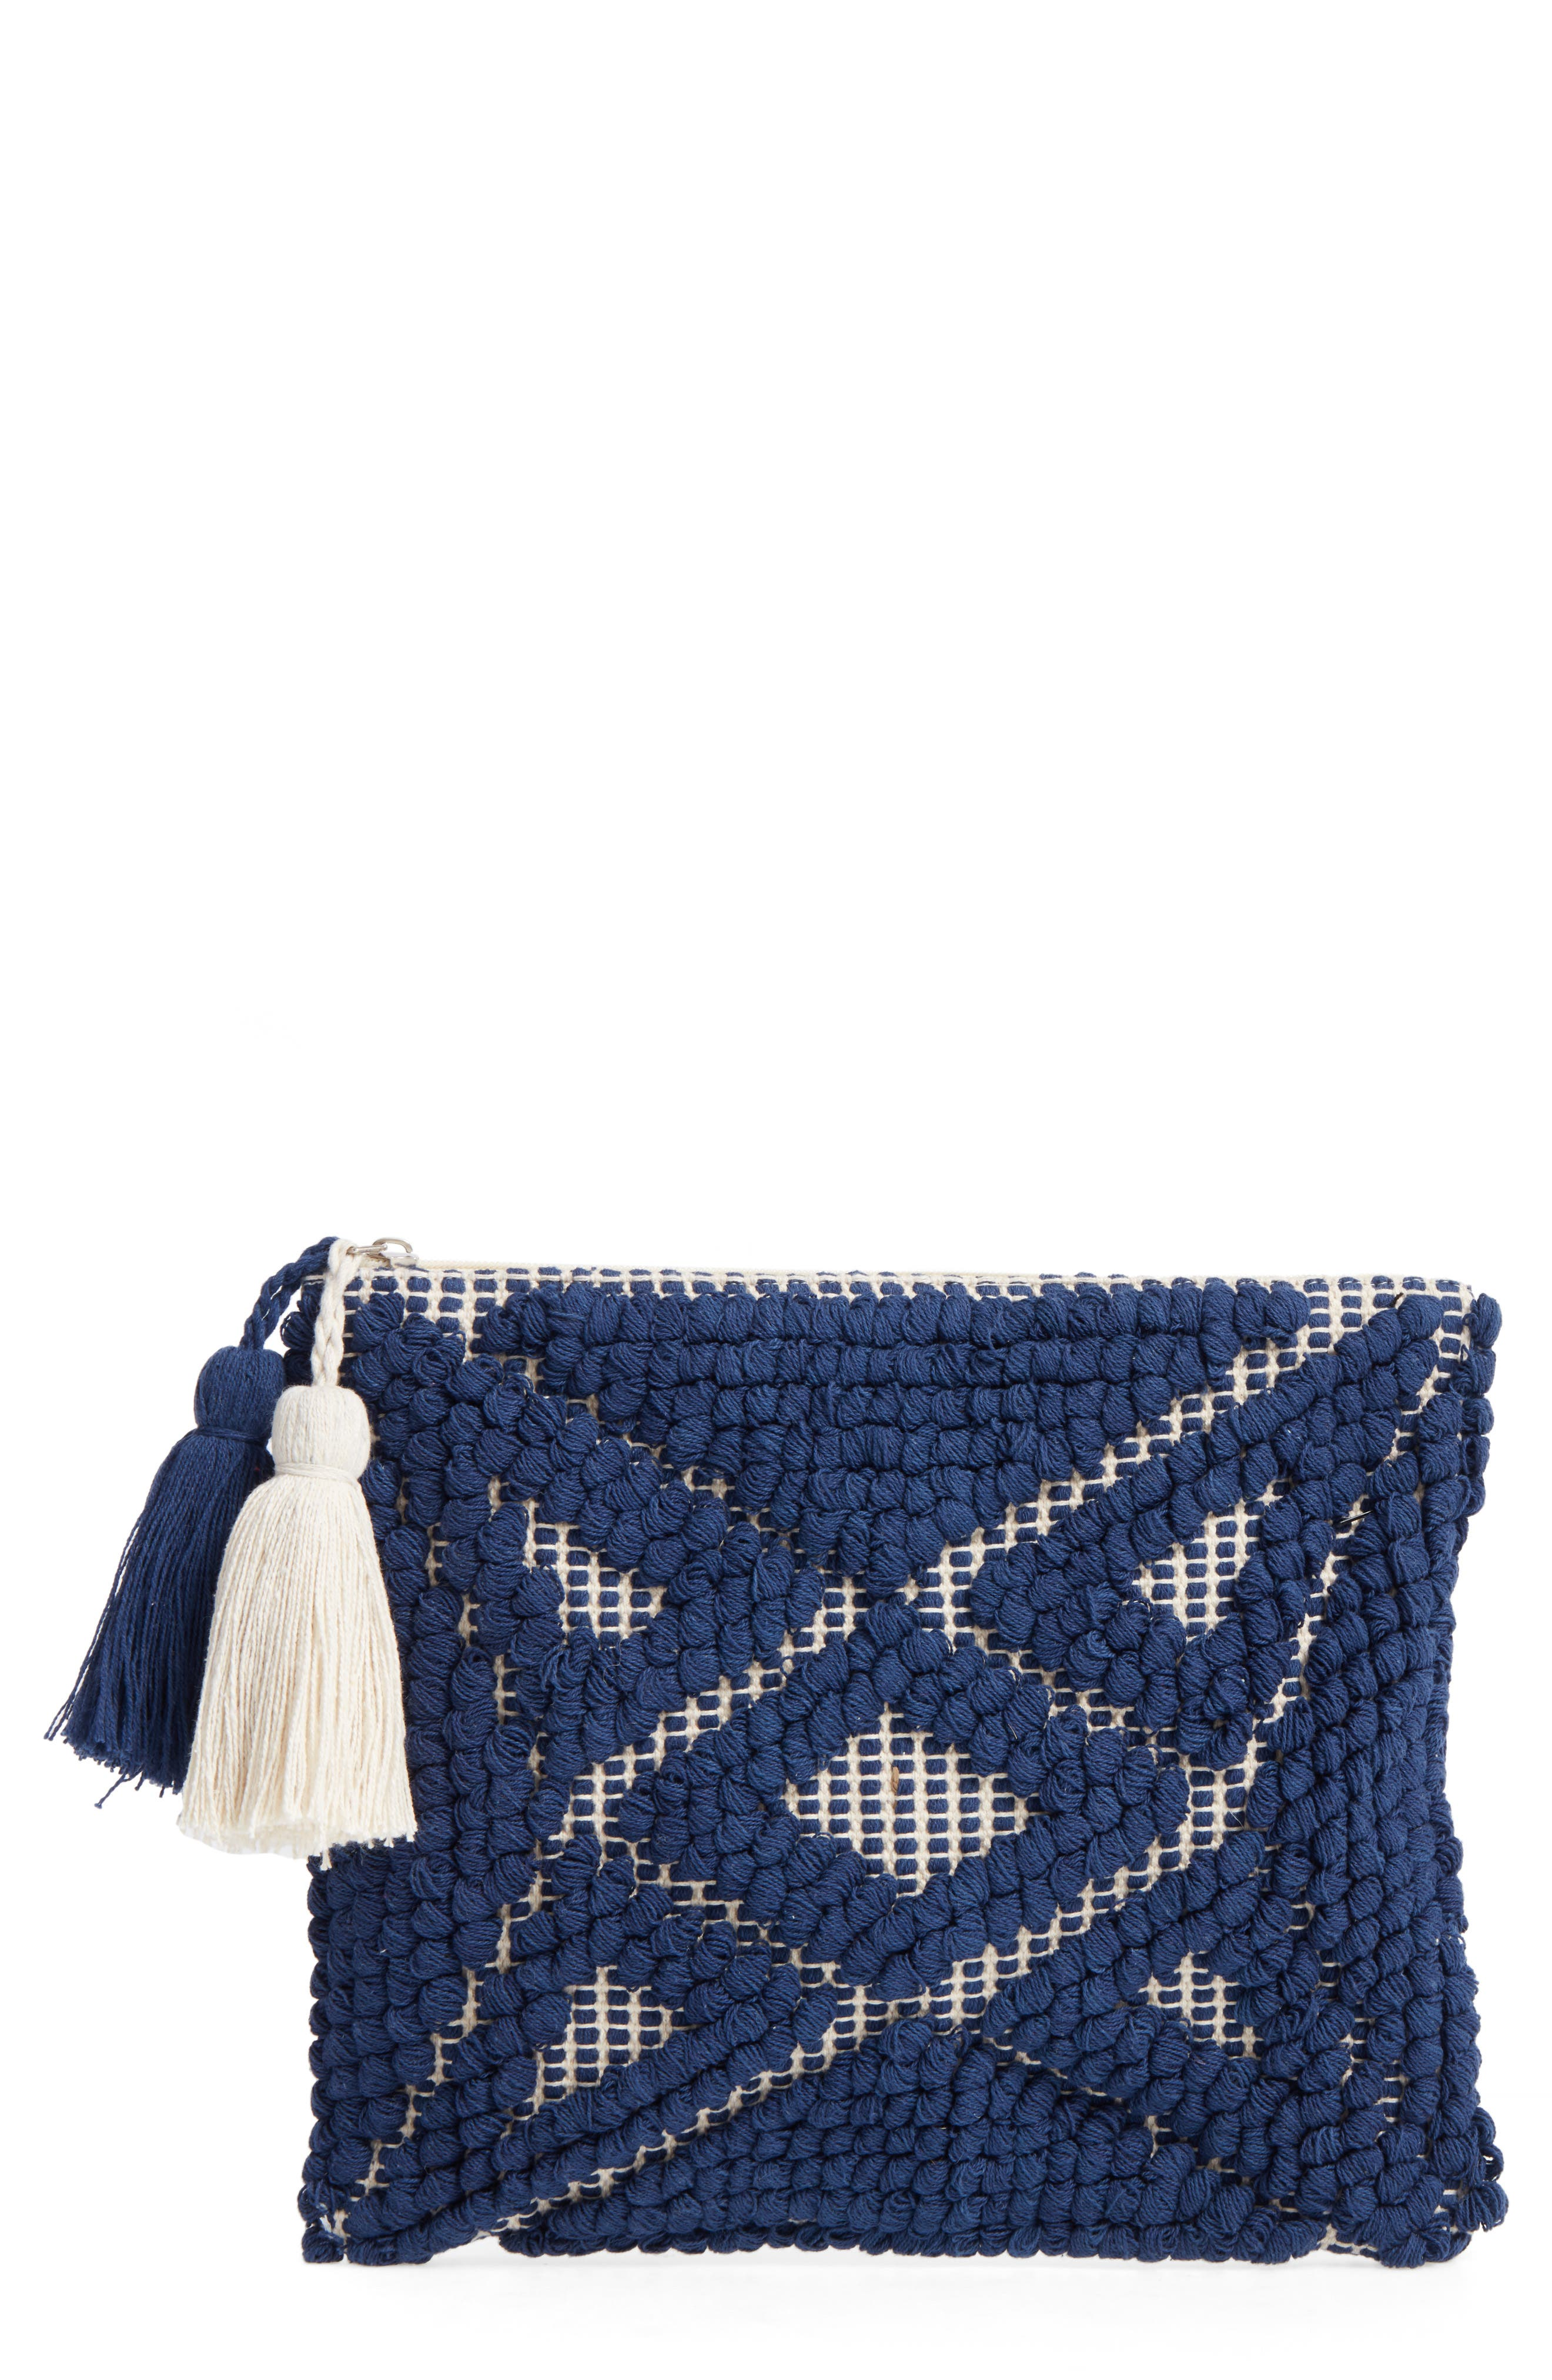 Alternate Image 1 Selected - Sole Society Palisades Tasseled Woven Clutch